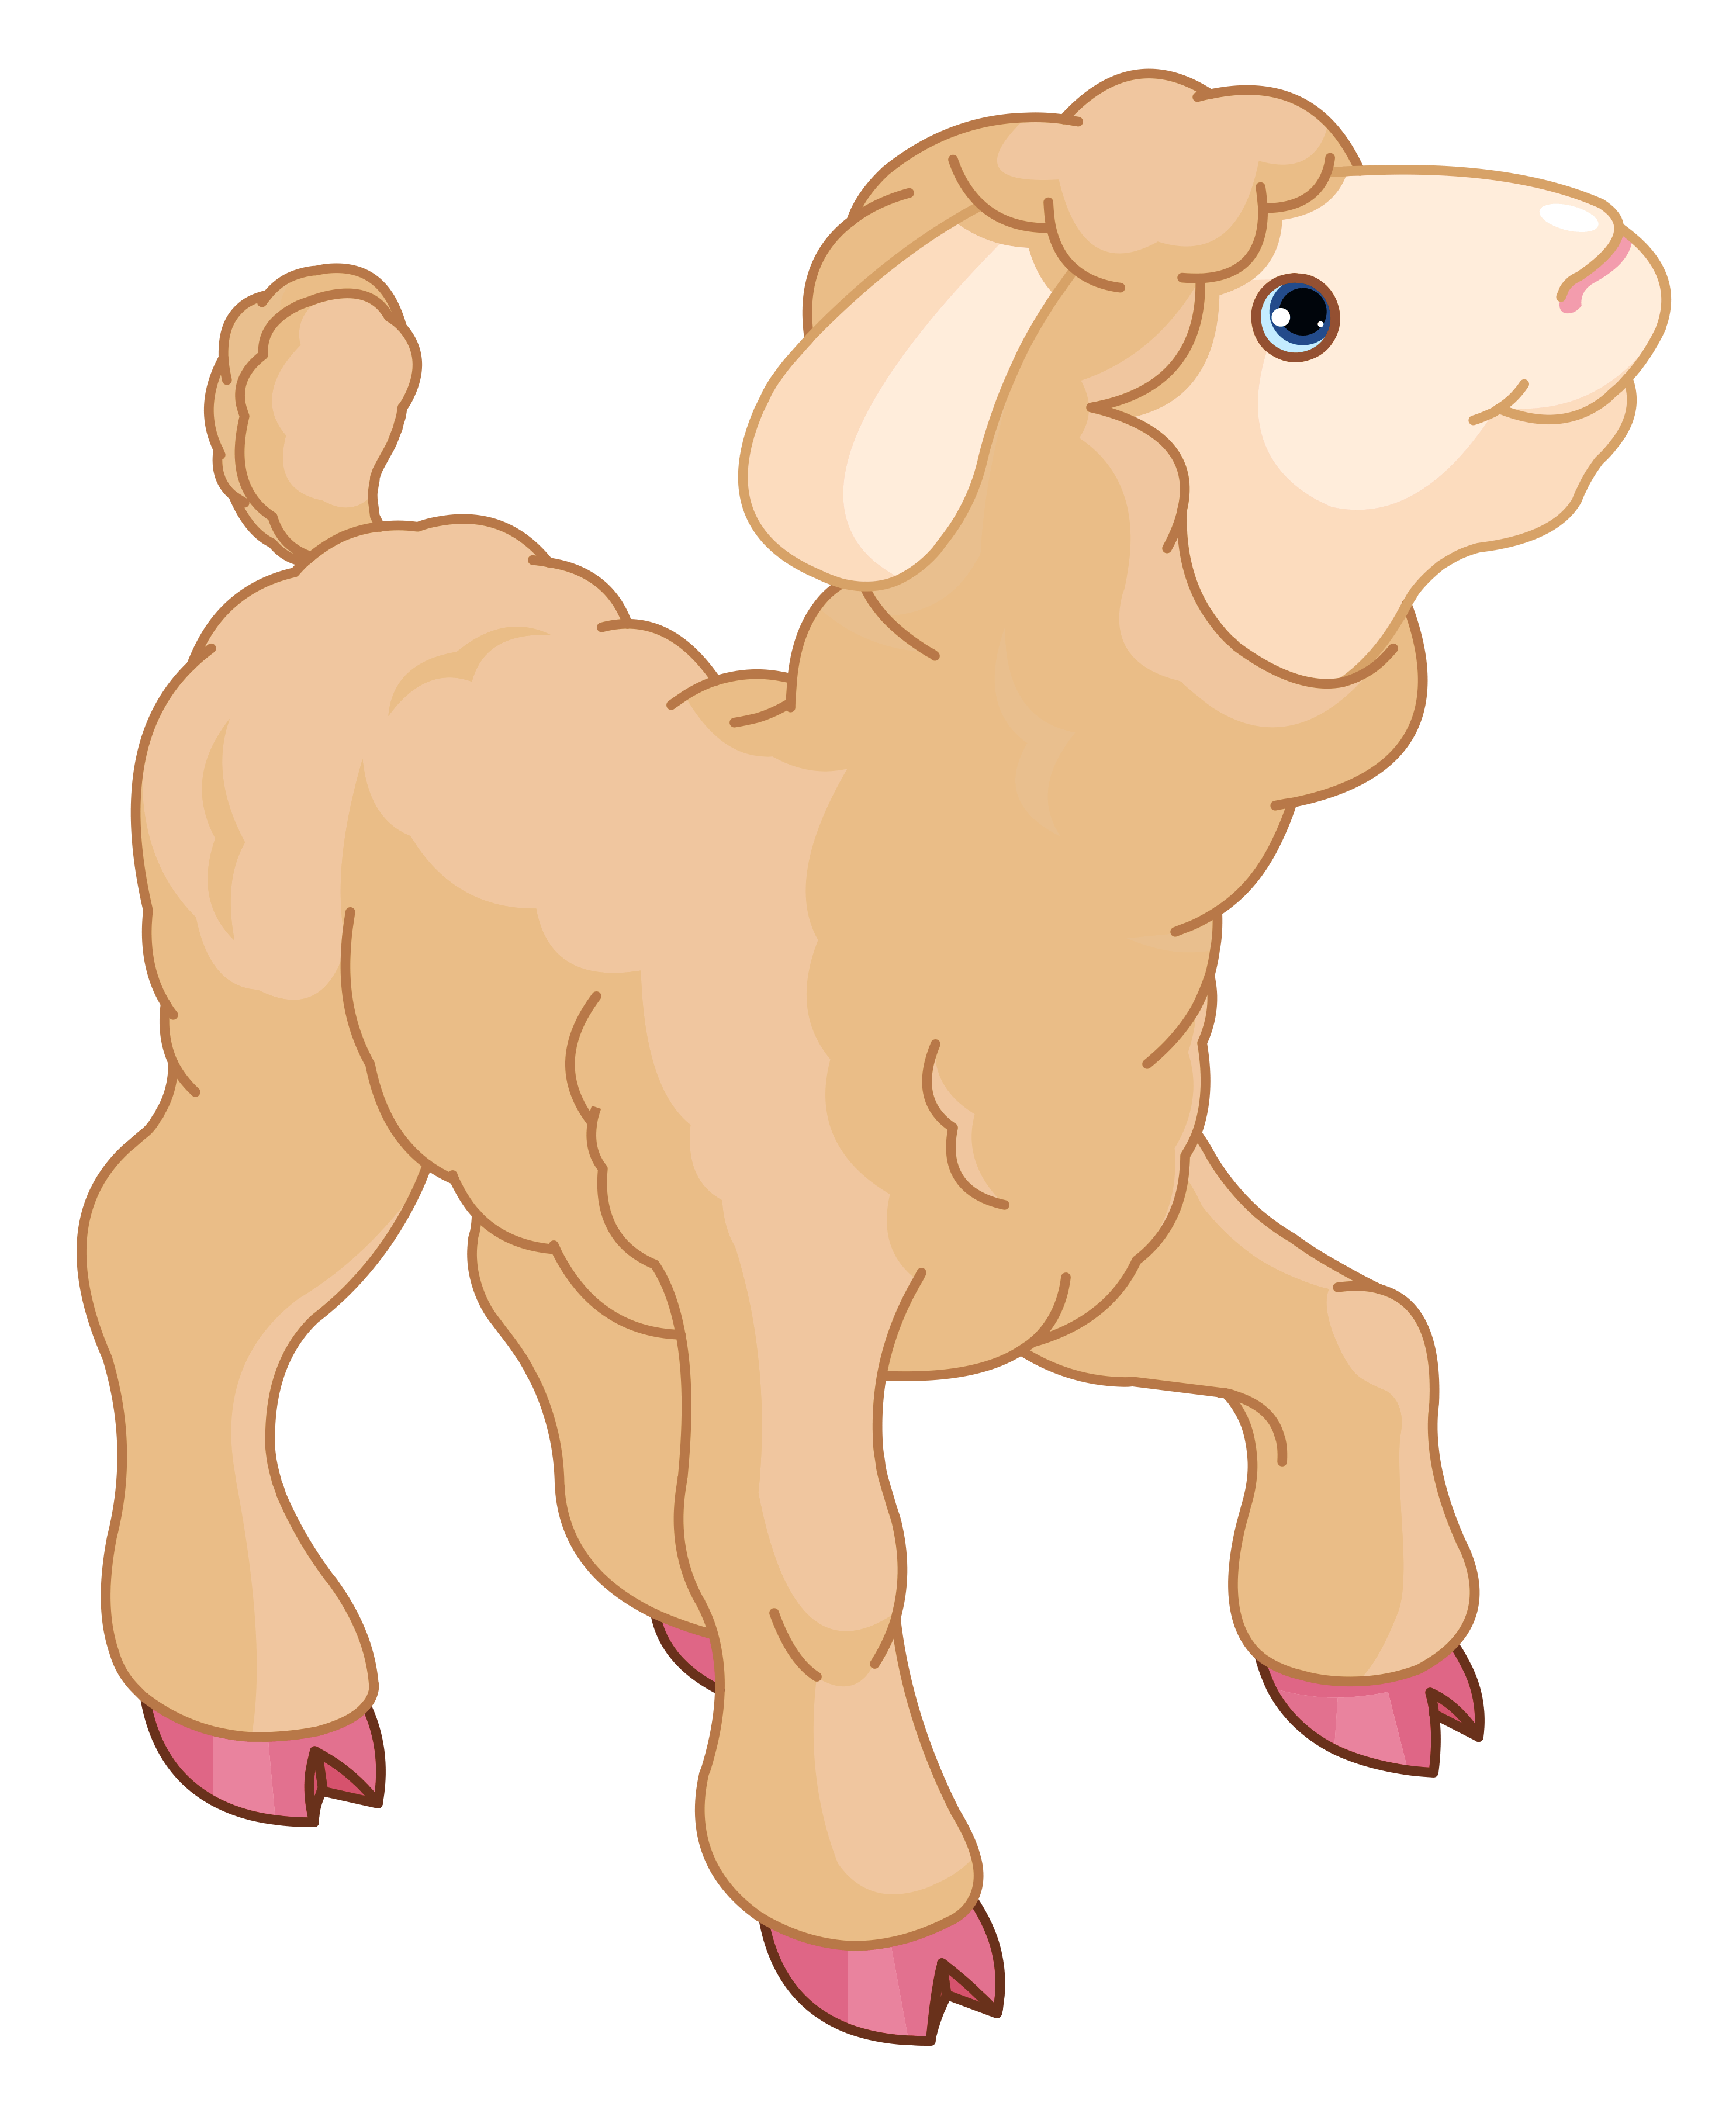 Lamb and cross clipart picture freeuse download Easter Lamb Clipart – Merry Christmas And Happy New Year 2018 picture freeuse download